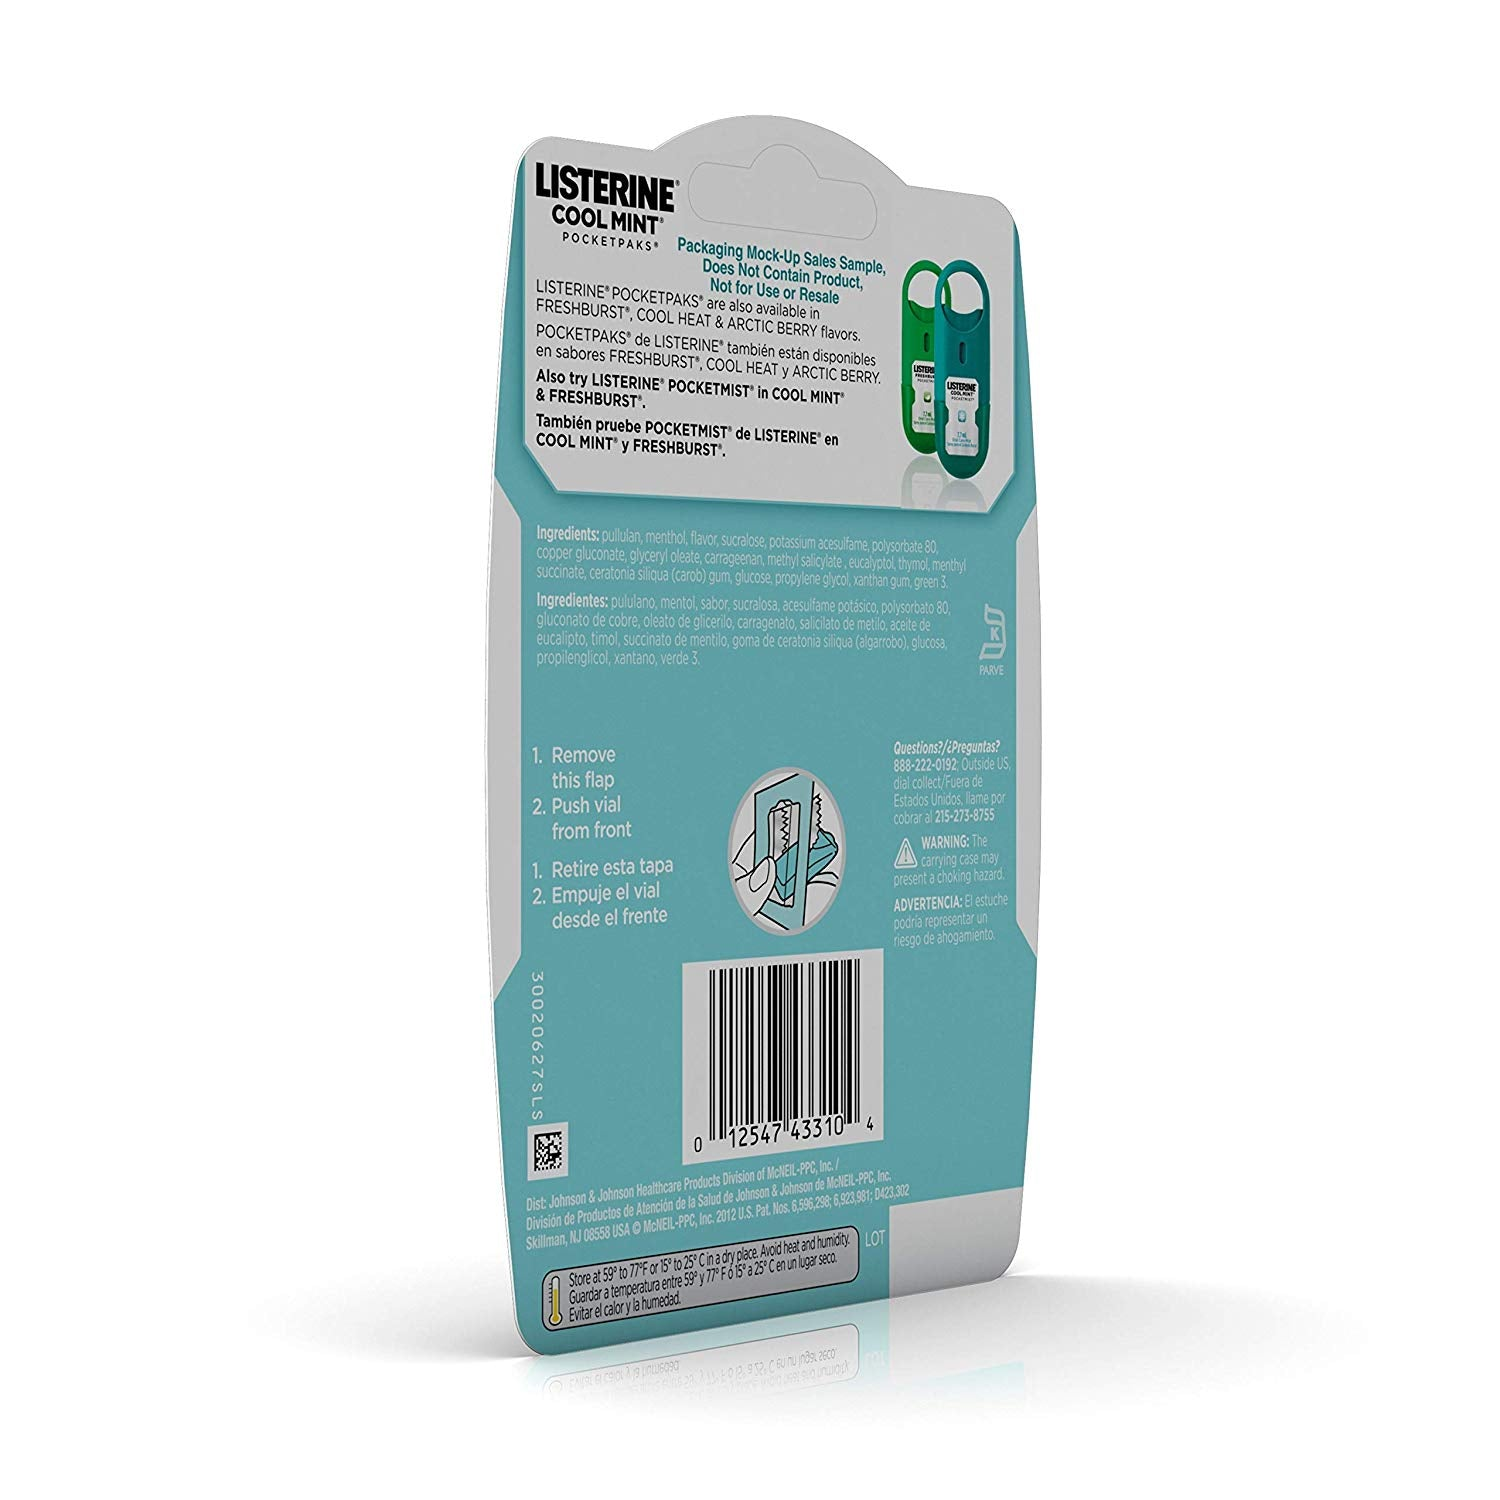 Listerine Cool Mint Pocketpaks Breath Strips Kills Bad Breath Germs, 24-Strip Pack (12 Pack)